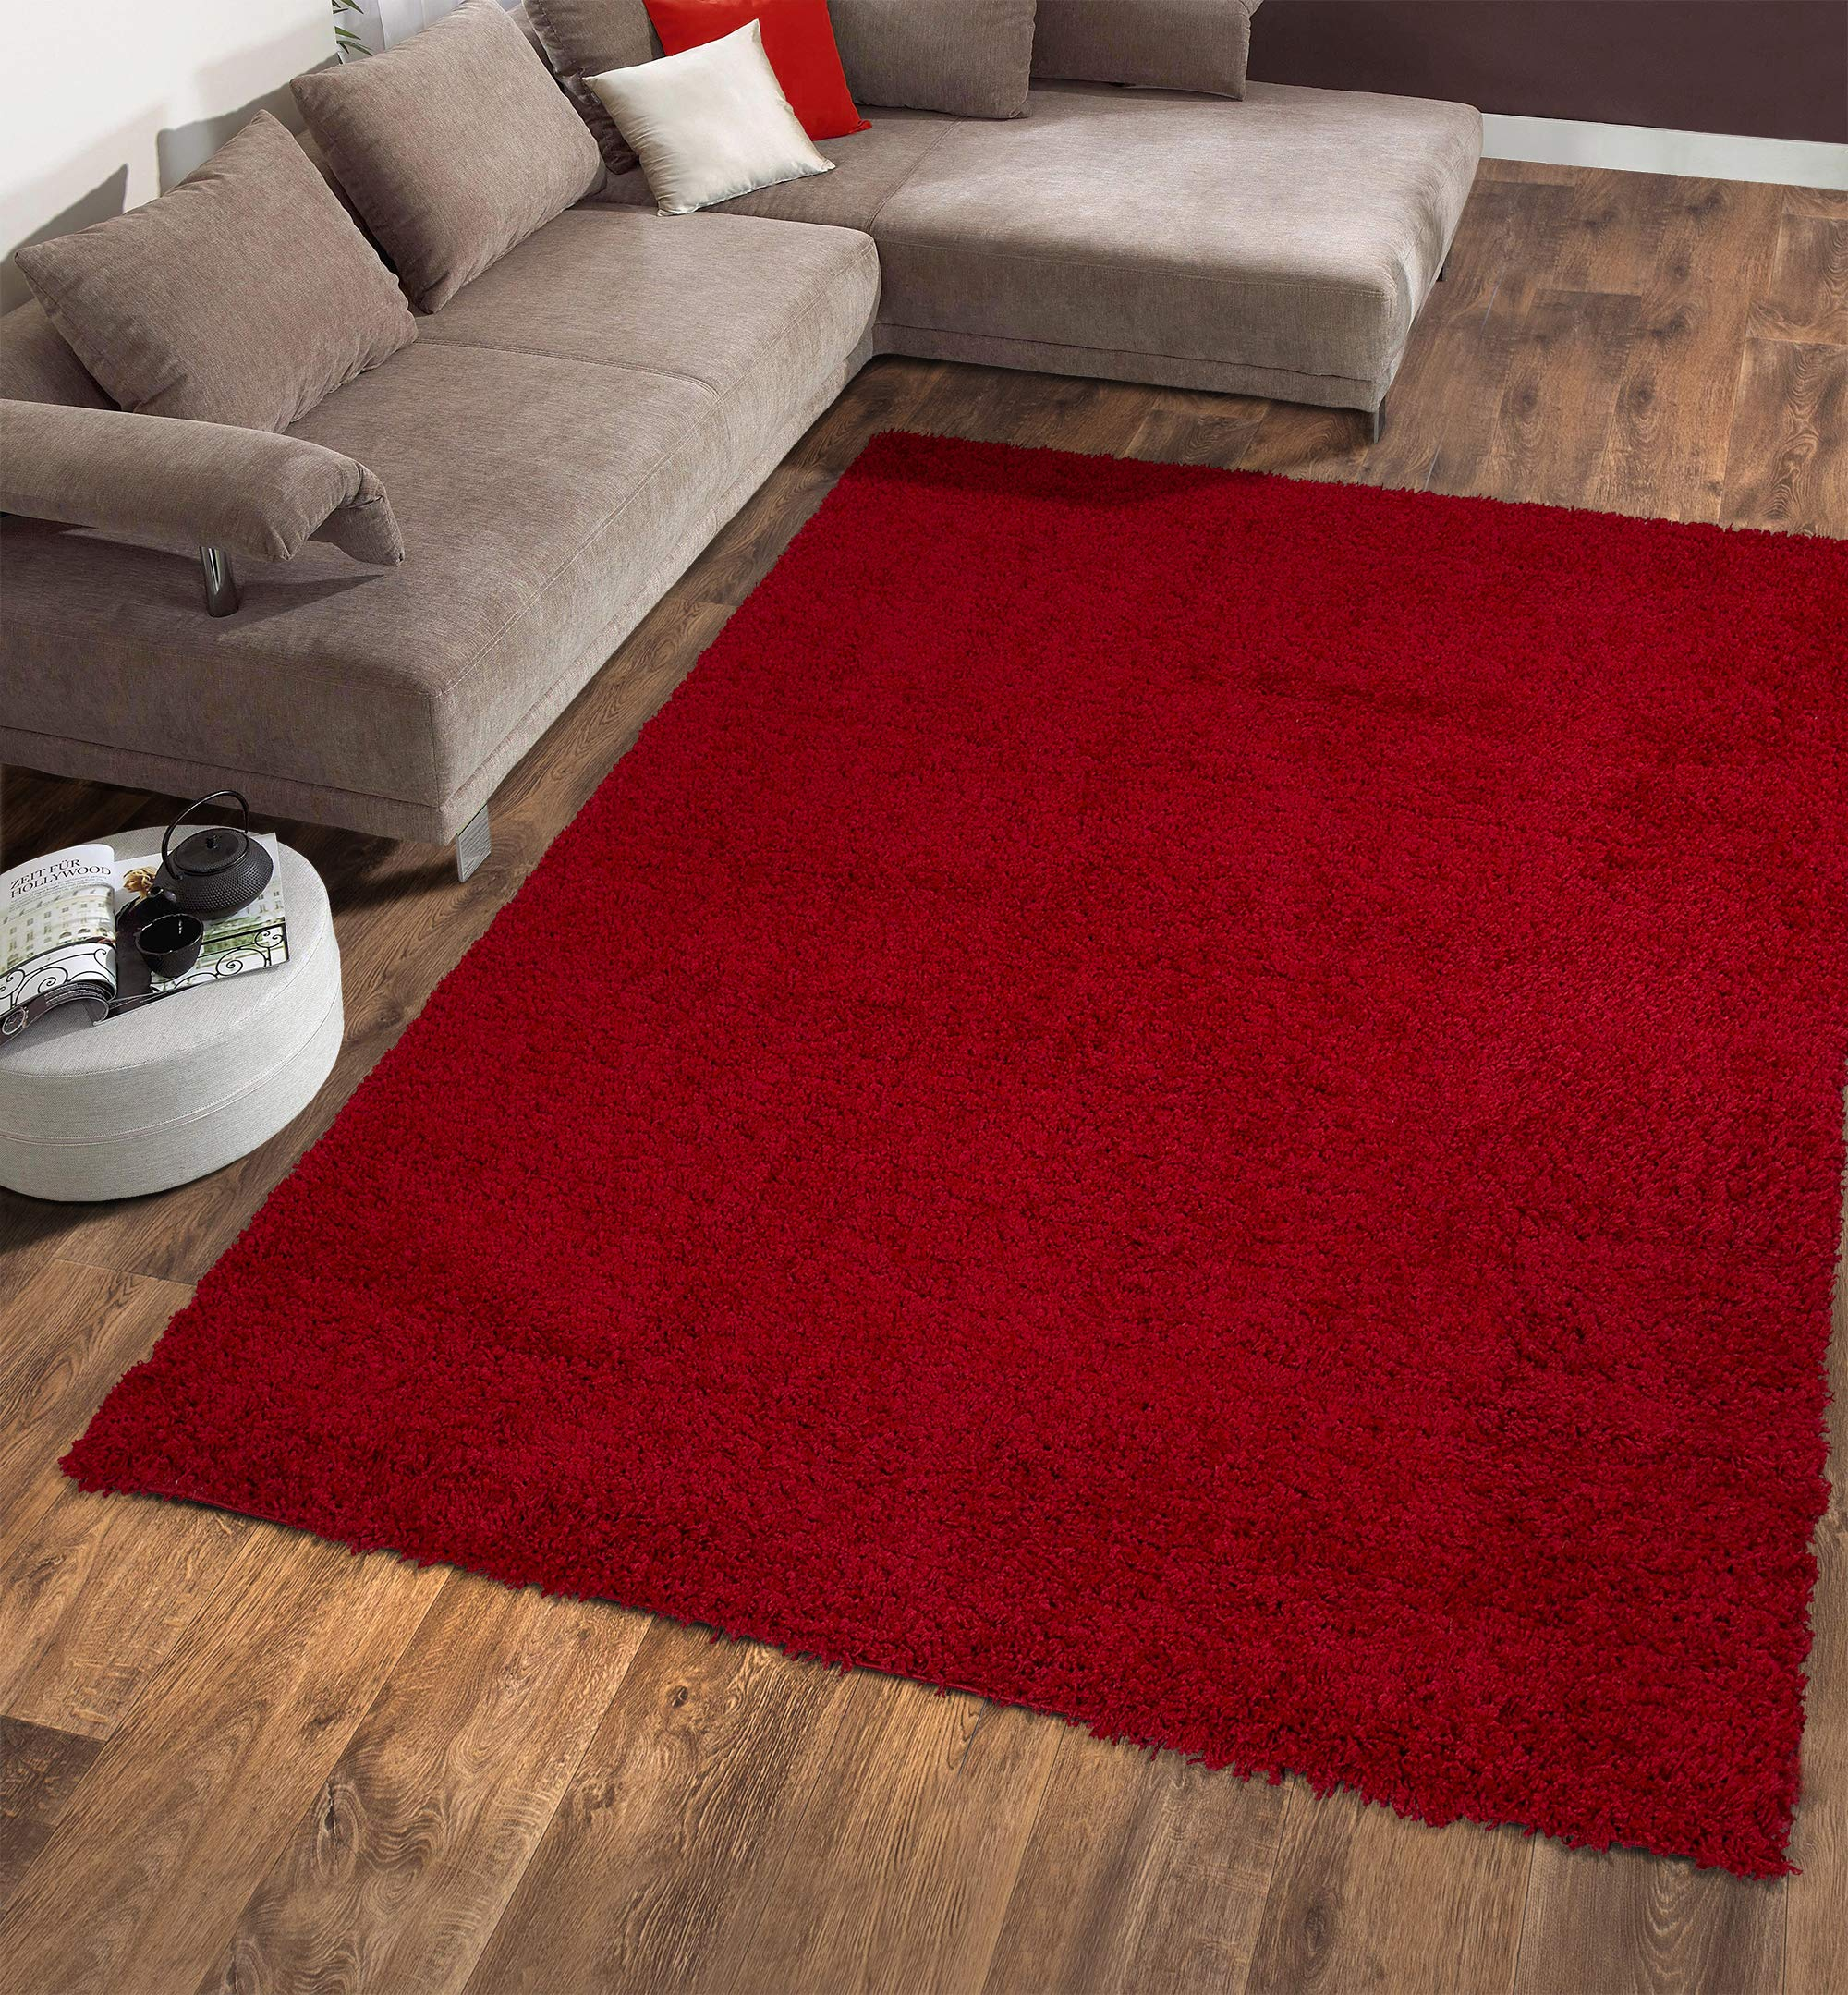 """Ottomanson Soft Cozy Color Solid Shag Area Rug Contemporary Living and Bedroom Soft Shag Area Rug, Red, 5'3"""" L x 7'0"""" W"""